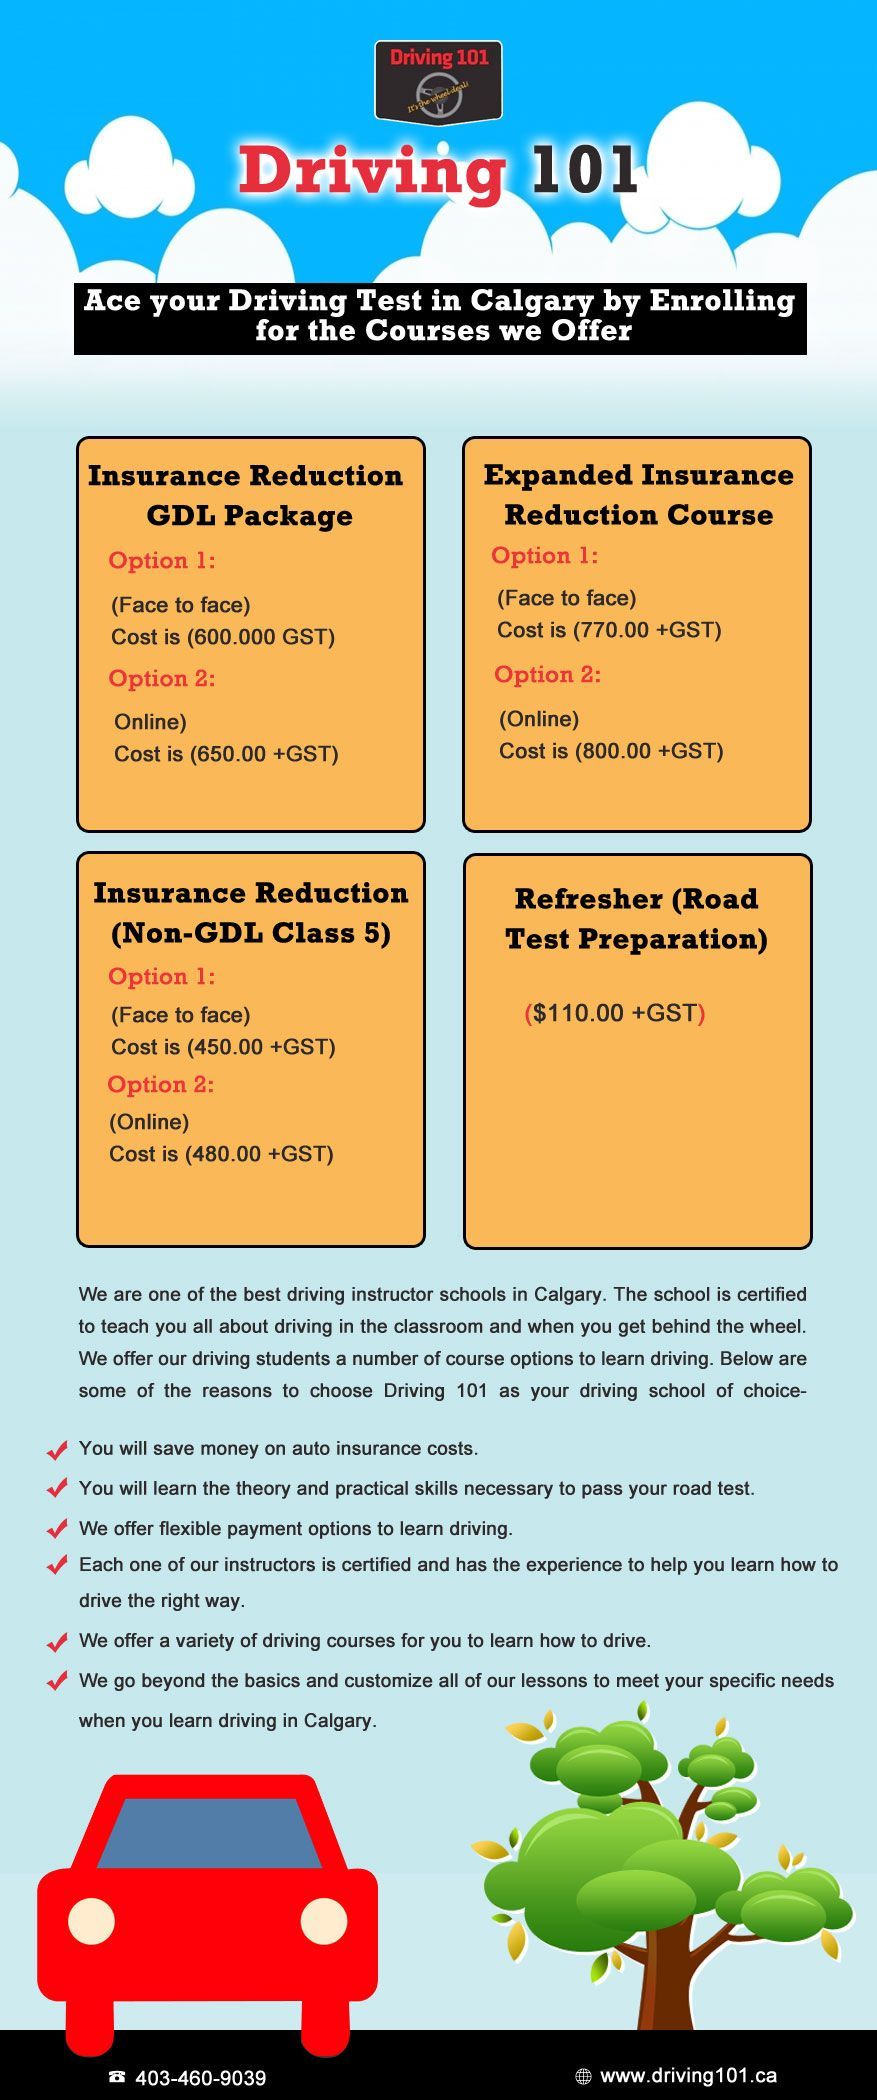 Come And Ace Your Driving Tests In Calgary By Enrolling The Courses